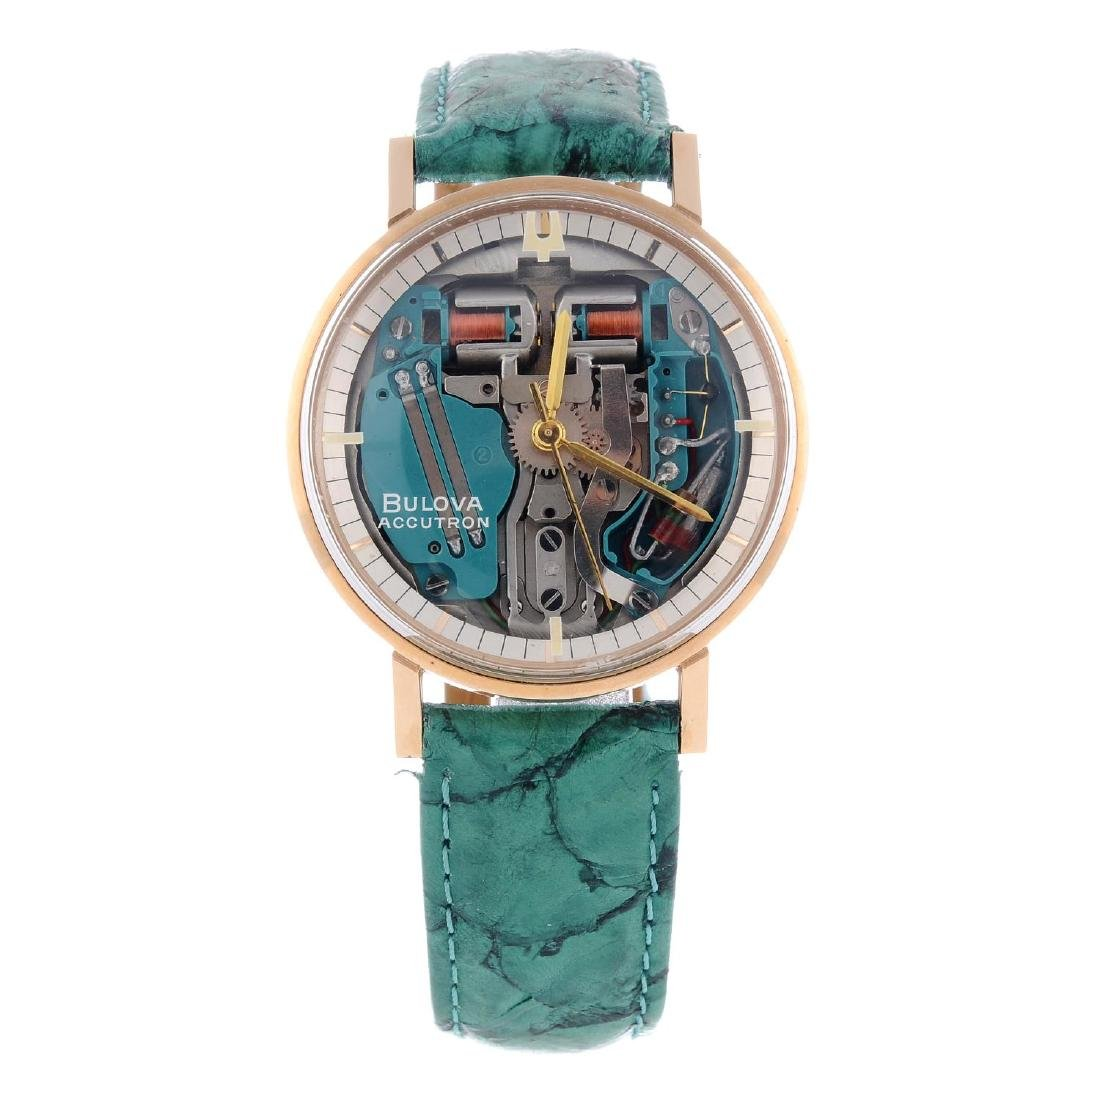 BULOVA - a gentleman's Accutron Spaceview wrist watch.